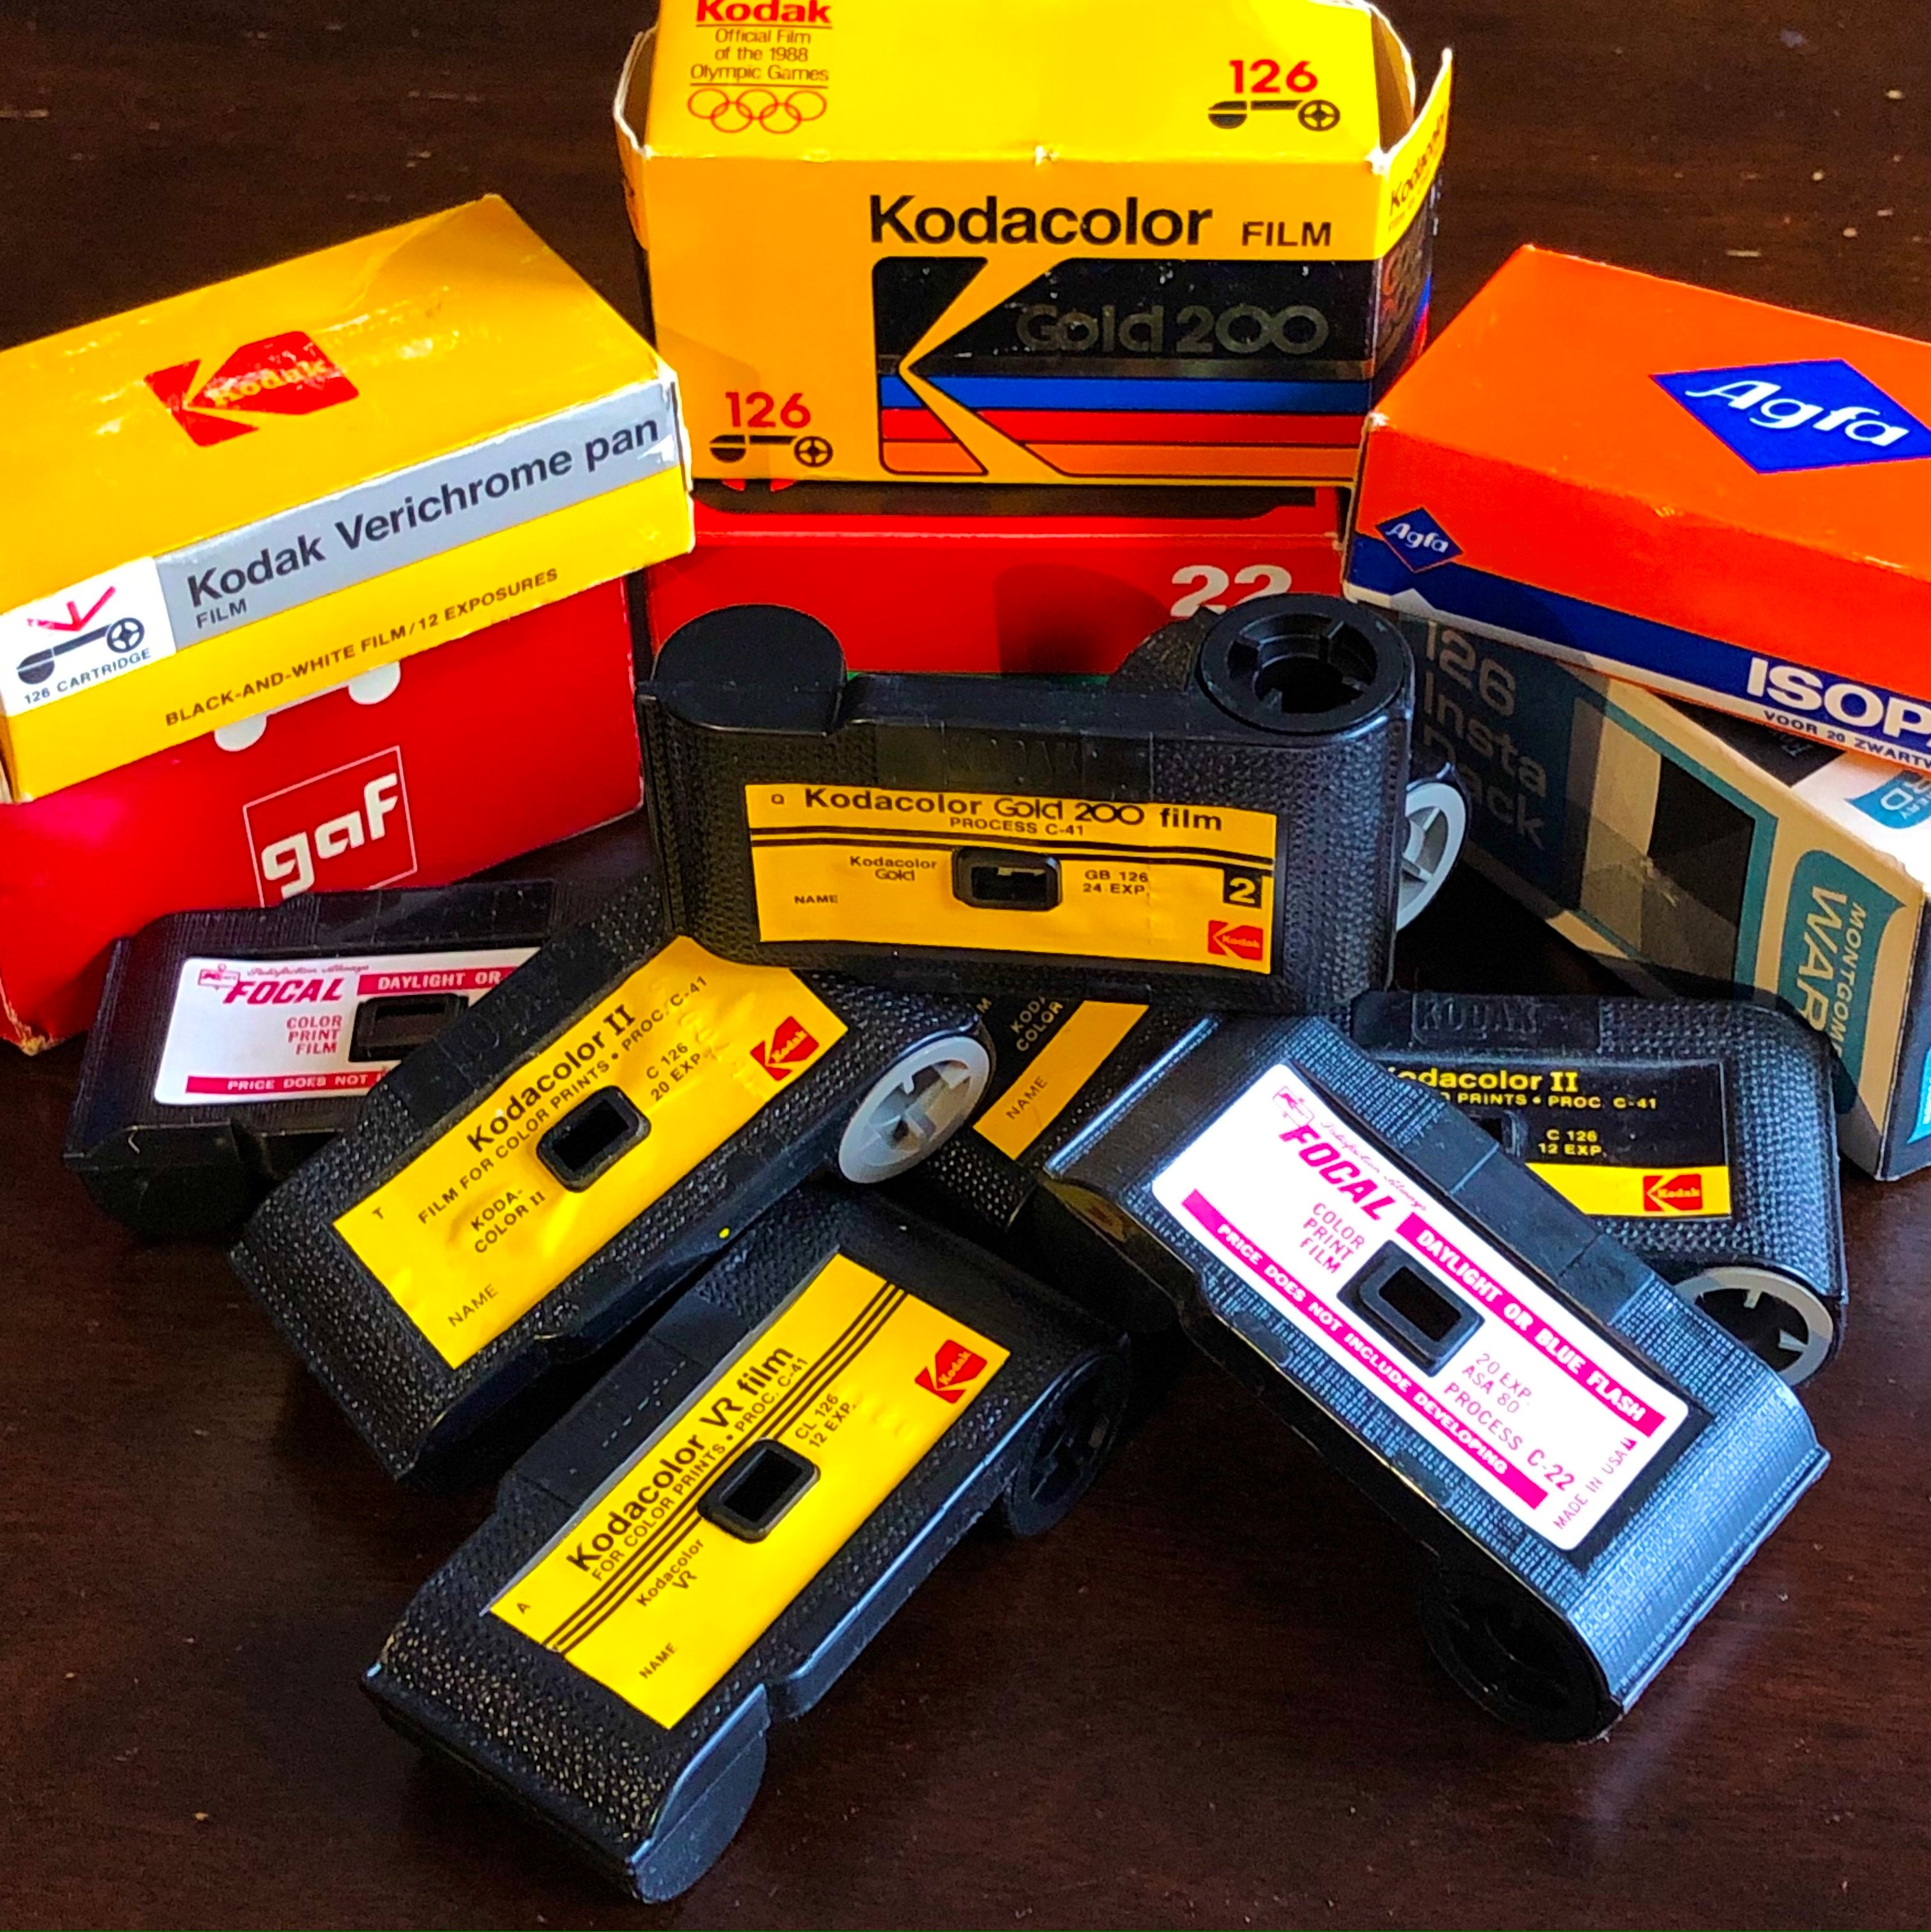 Reloading Instamatic Film (The Better Way)